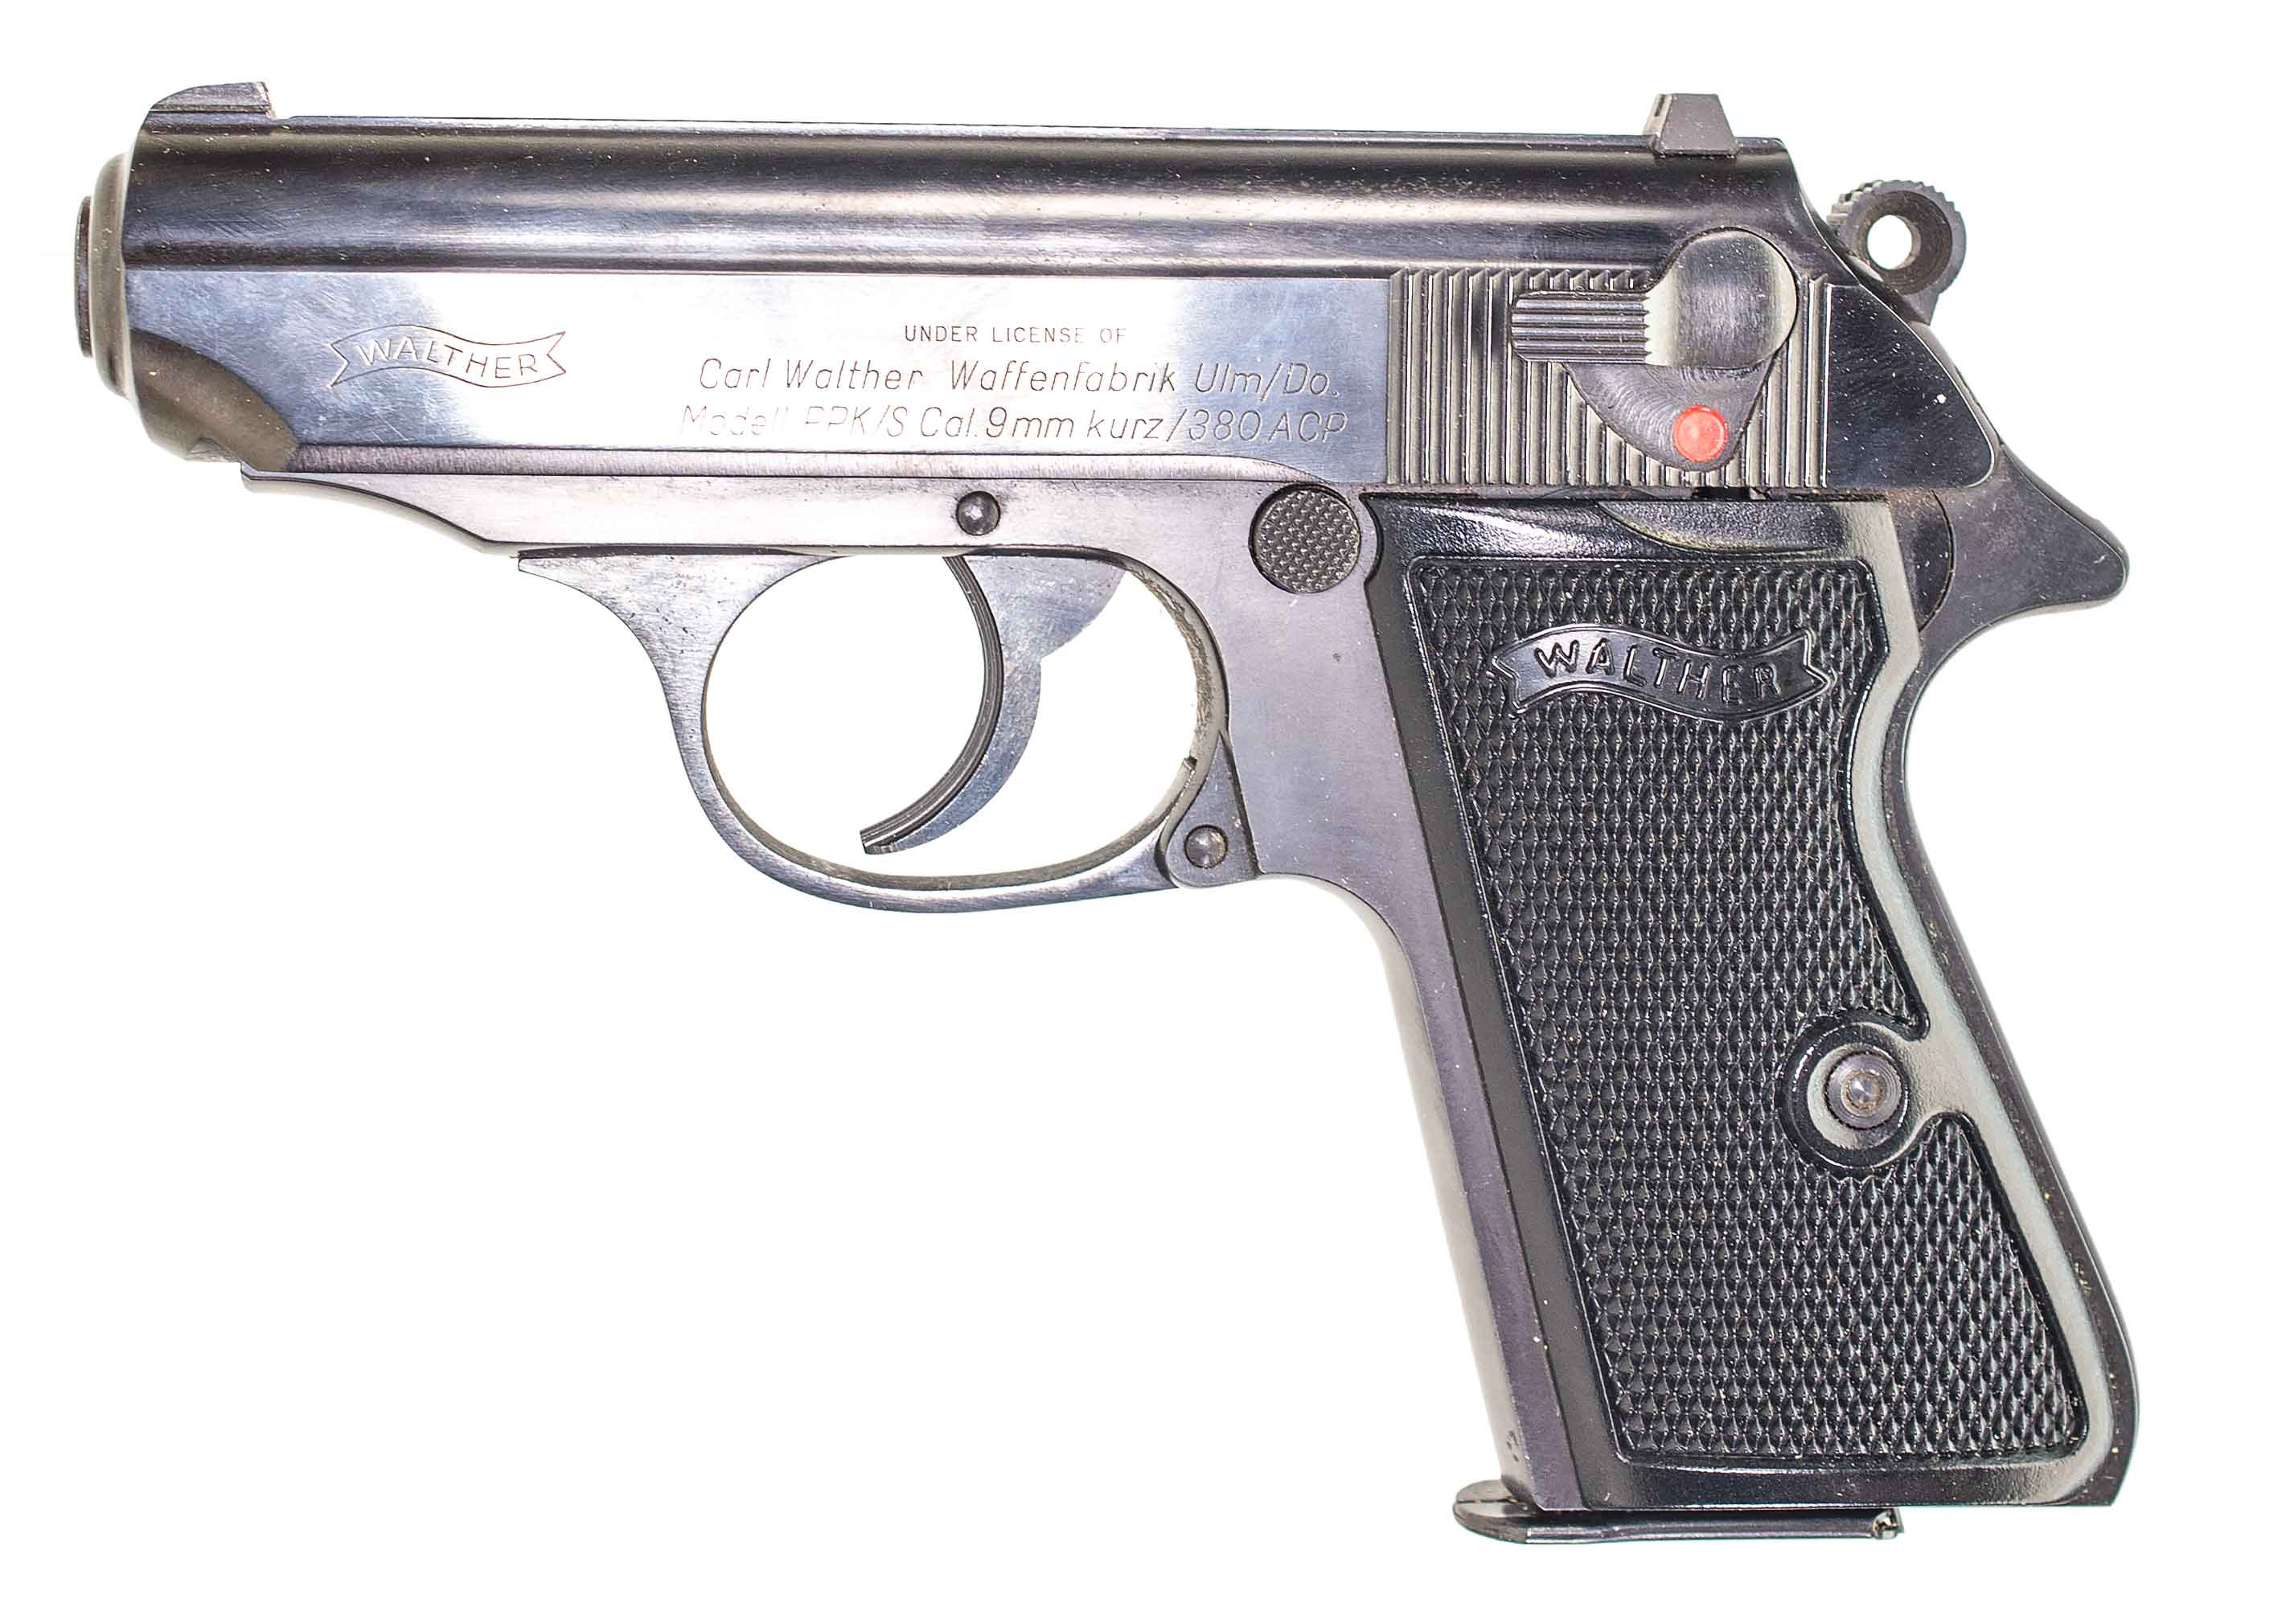 walther ppk s auction id 9121605 end time aug 30 2017 23 00